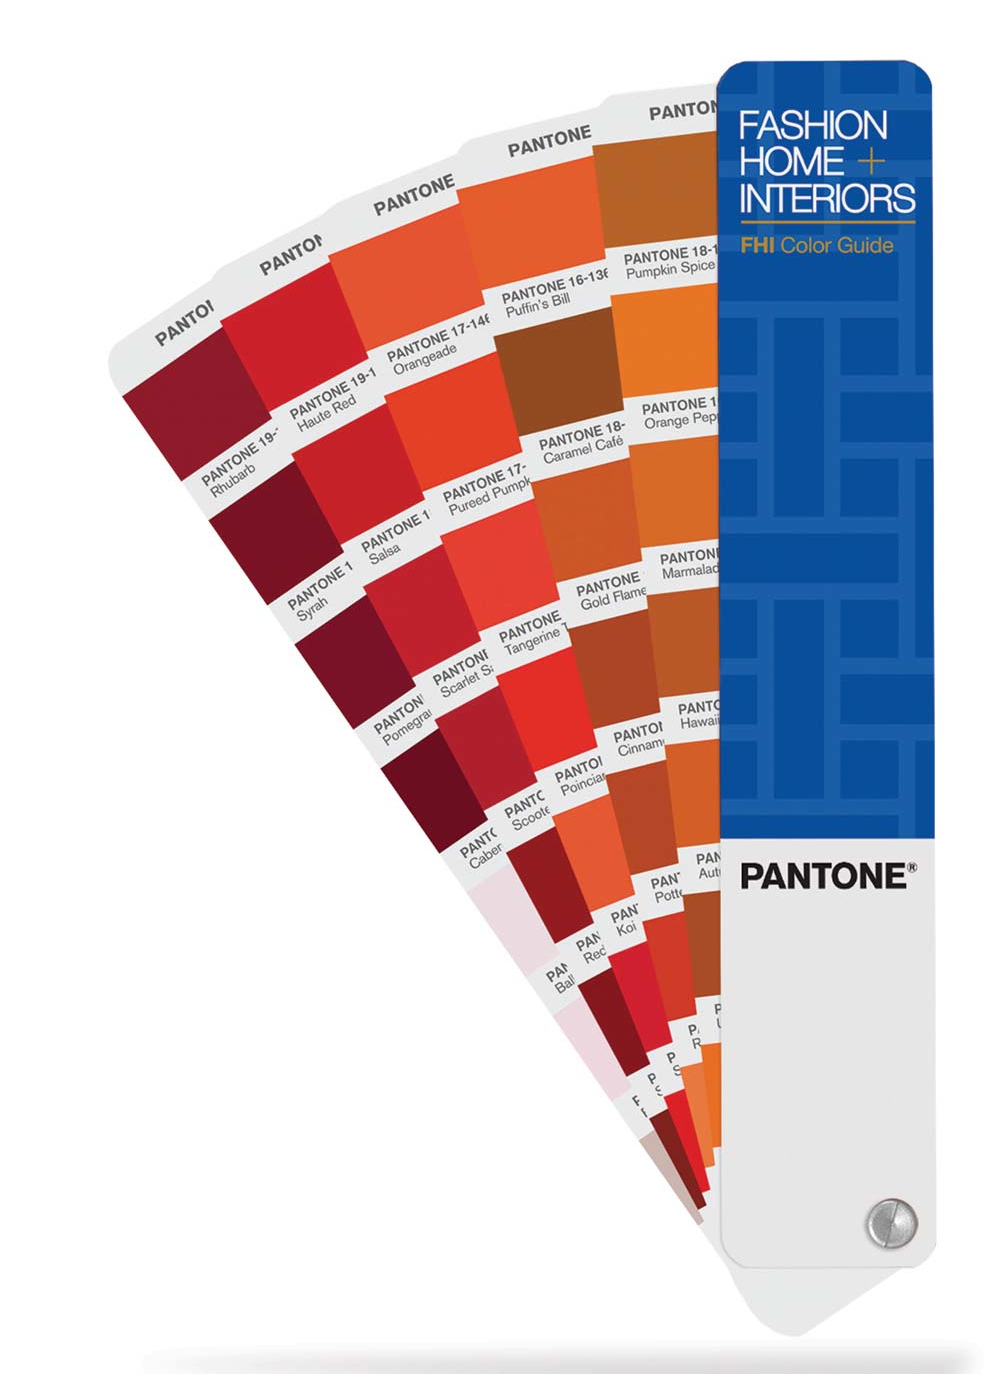 Pantone Fhi Fgp200 Color Guide